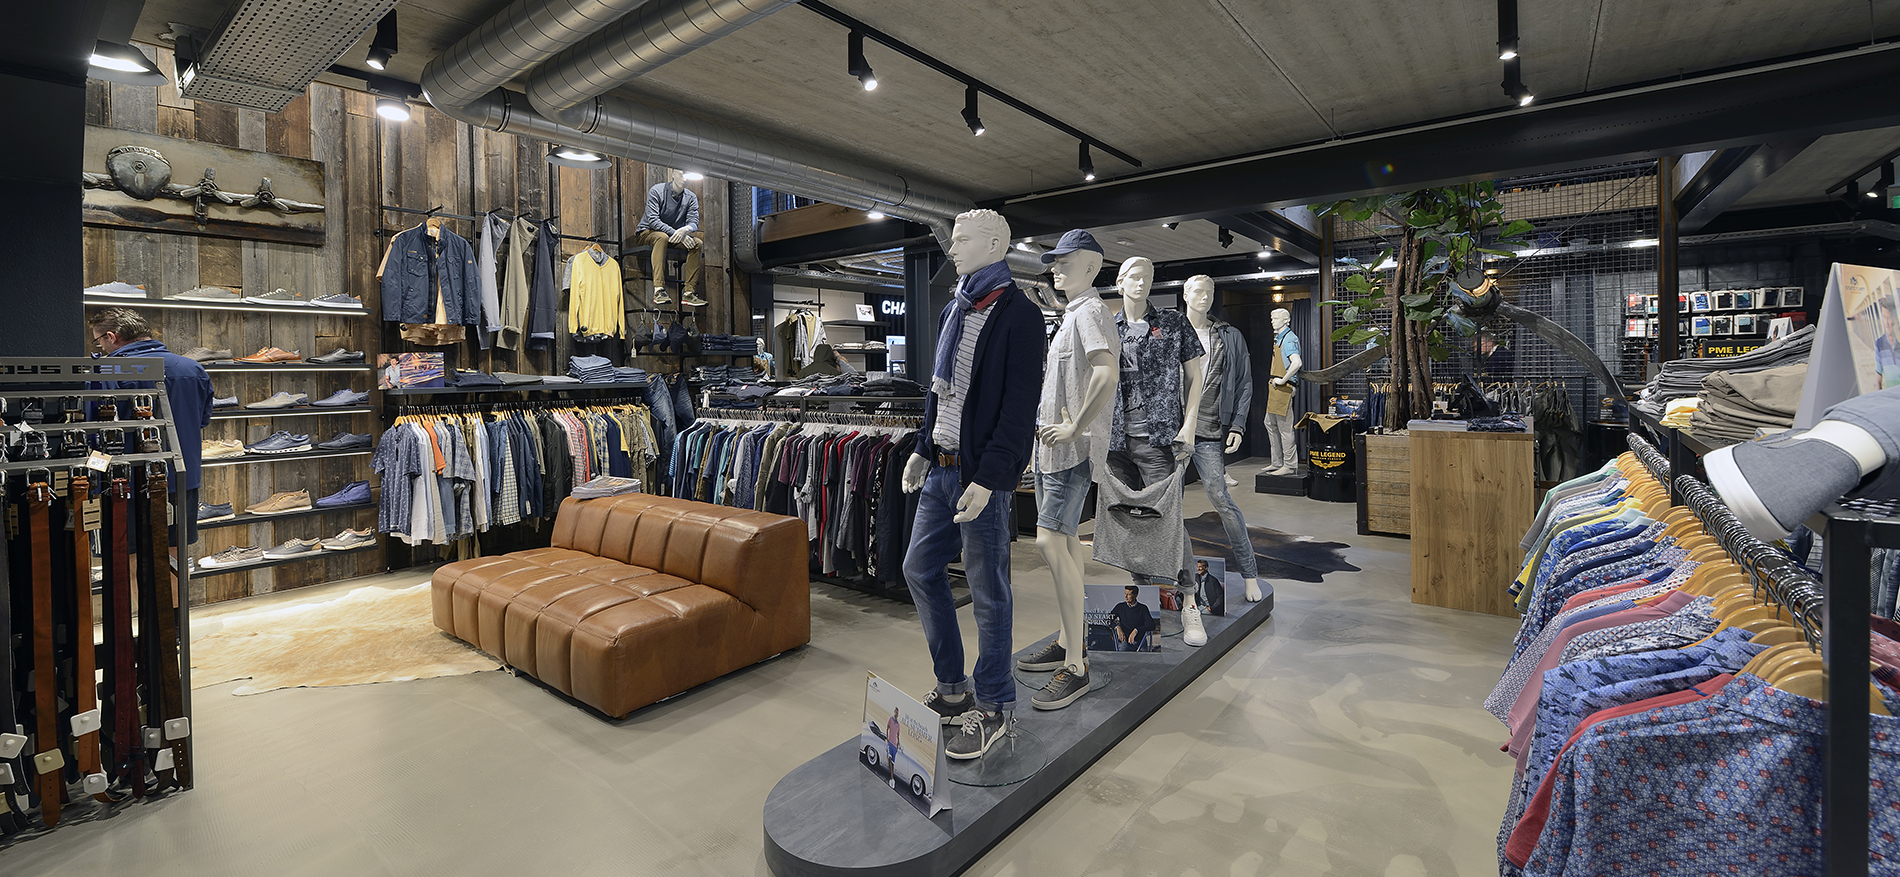 Mantje lifestyle store interieurconcept door retail for Interieur bouwer